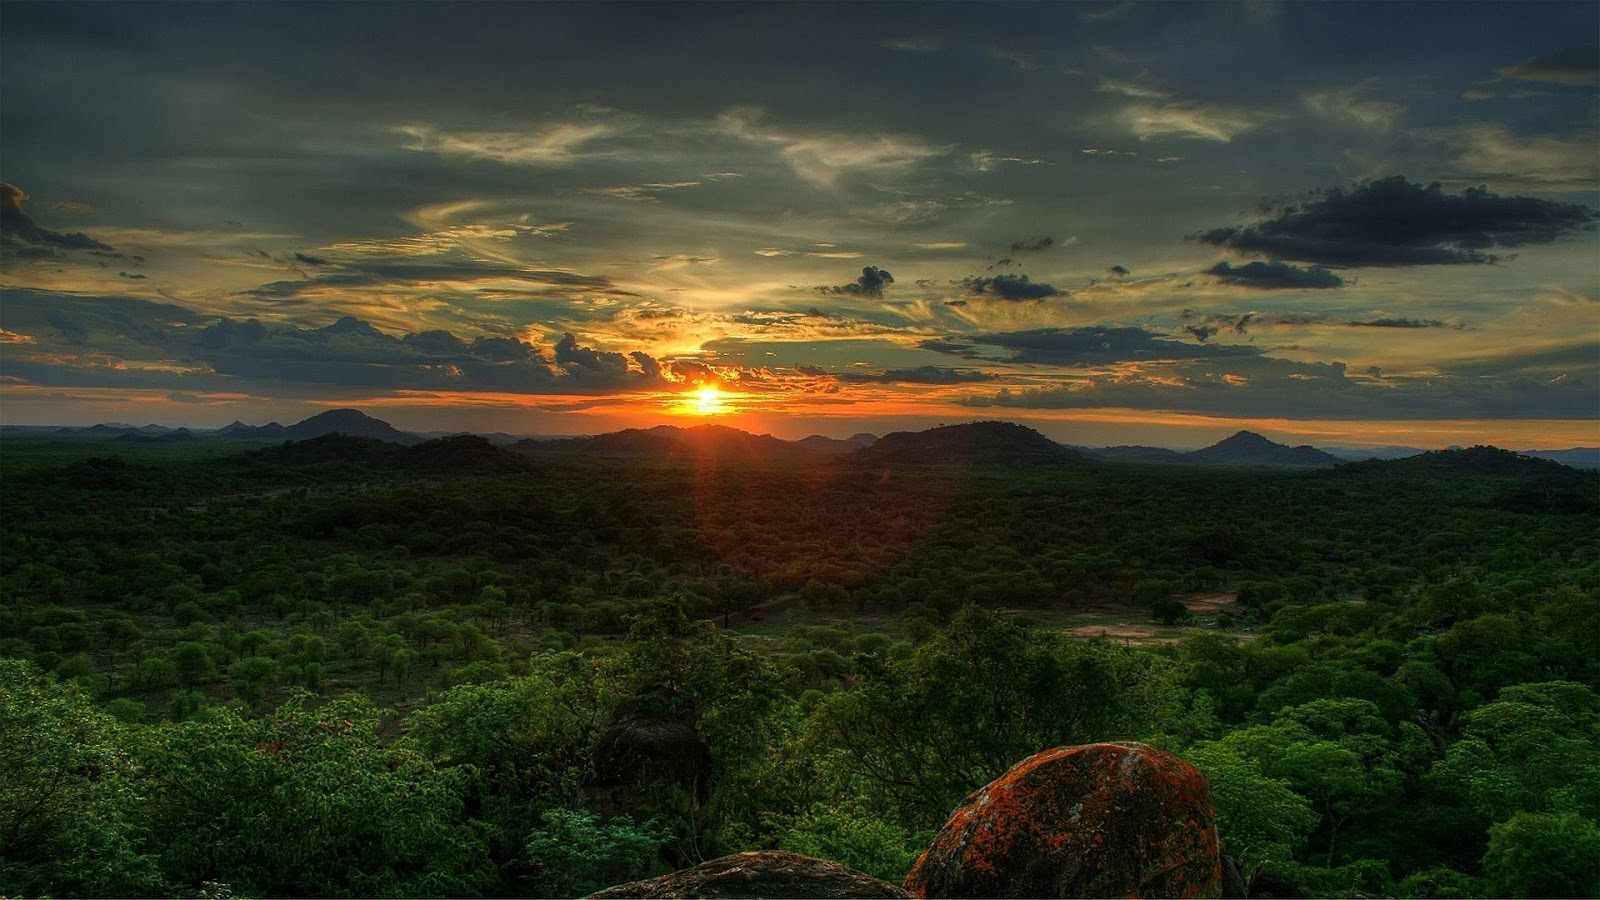 HD Sunset In Africa Wallpapers